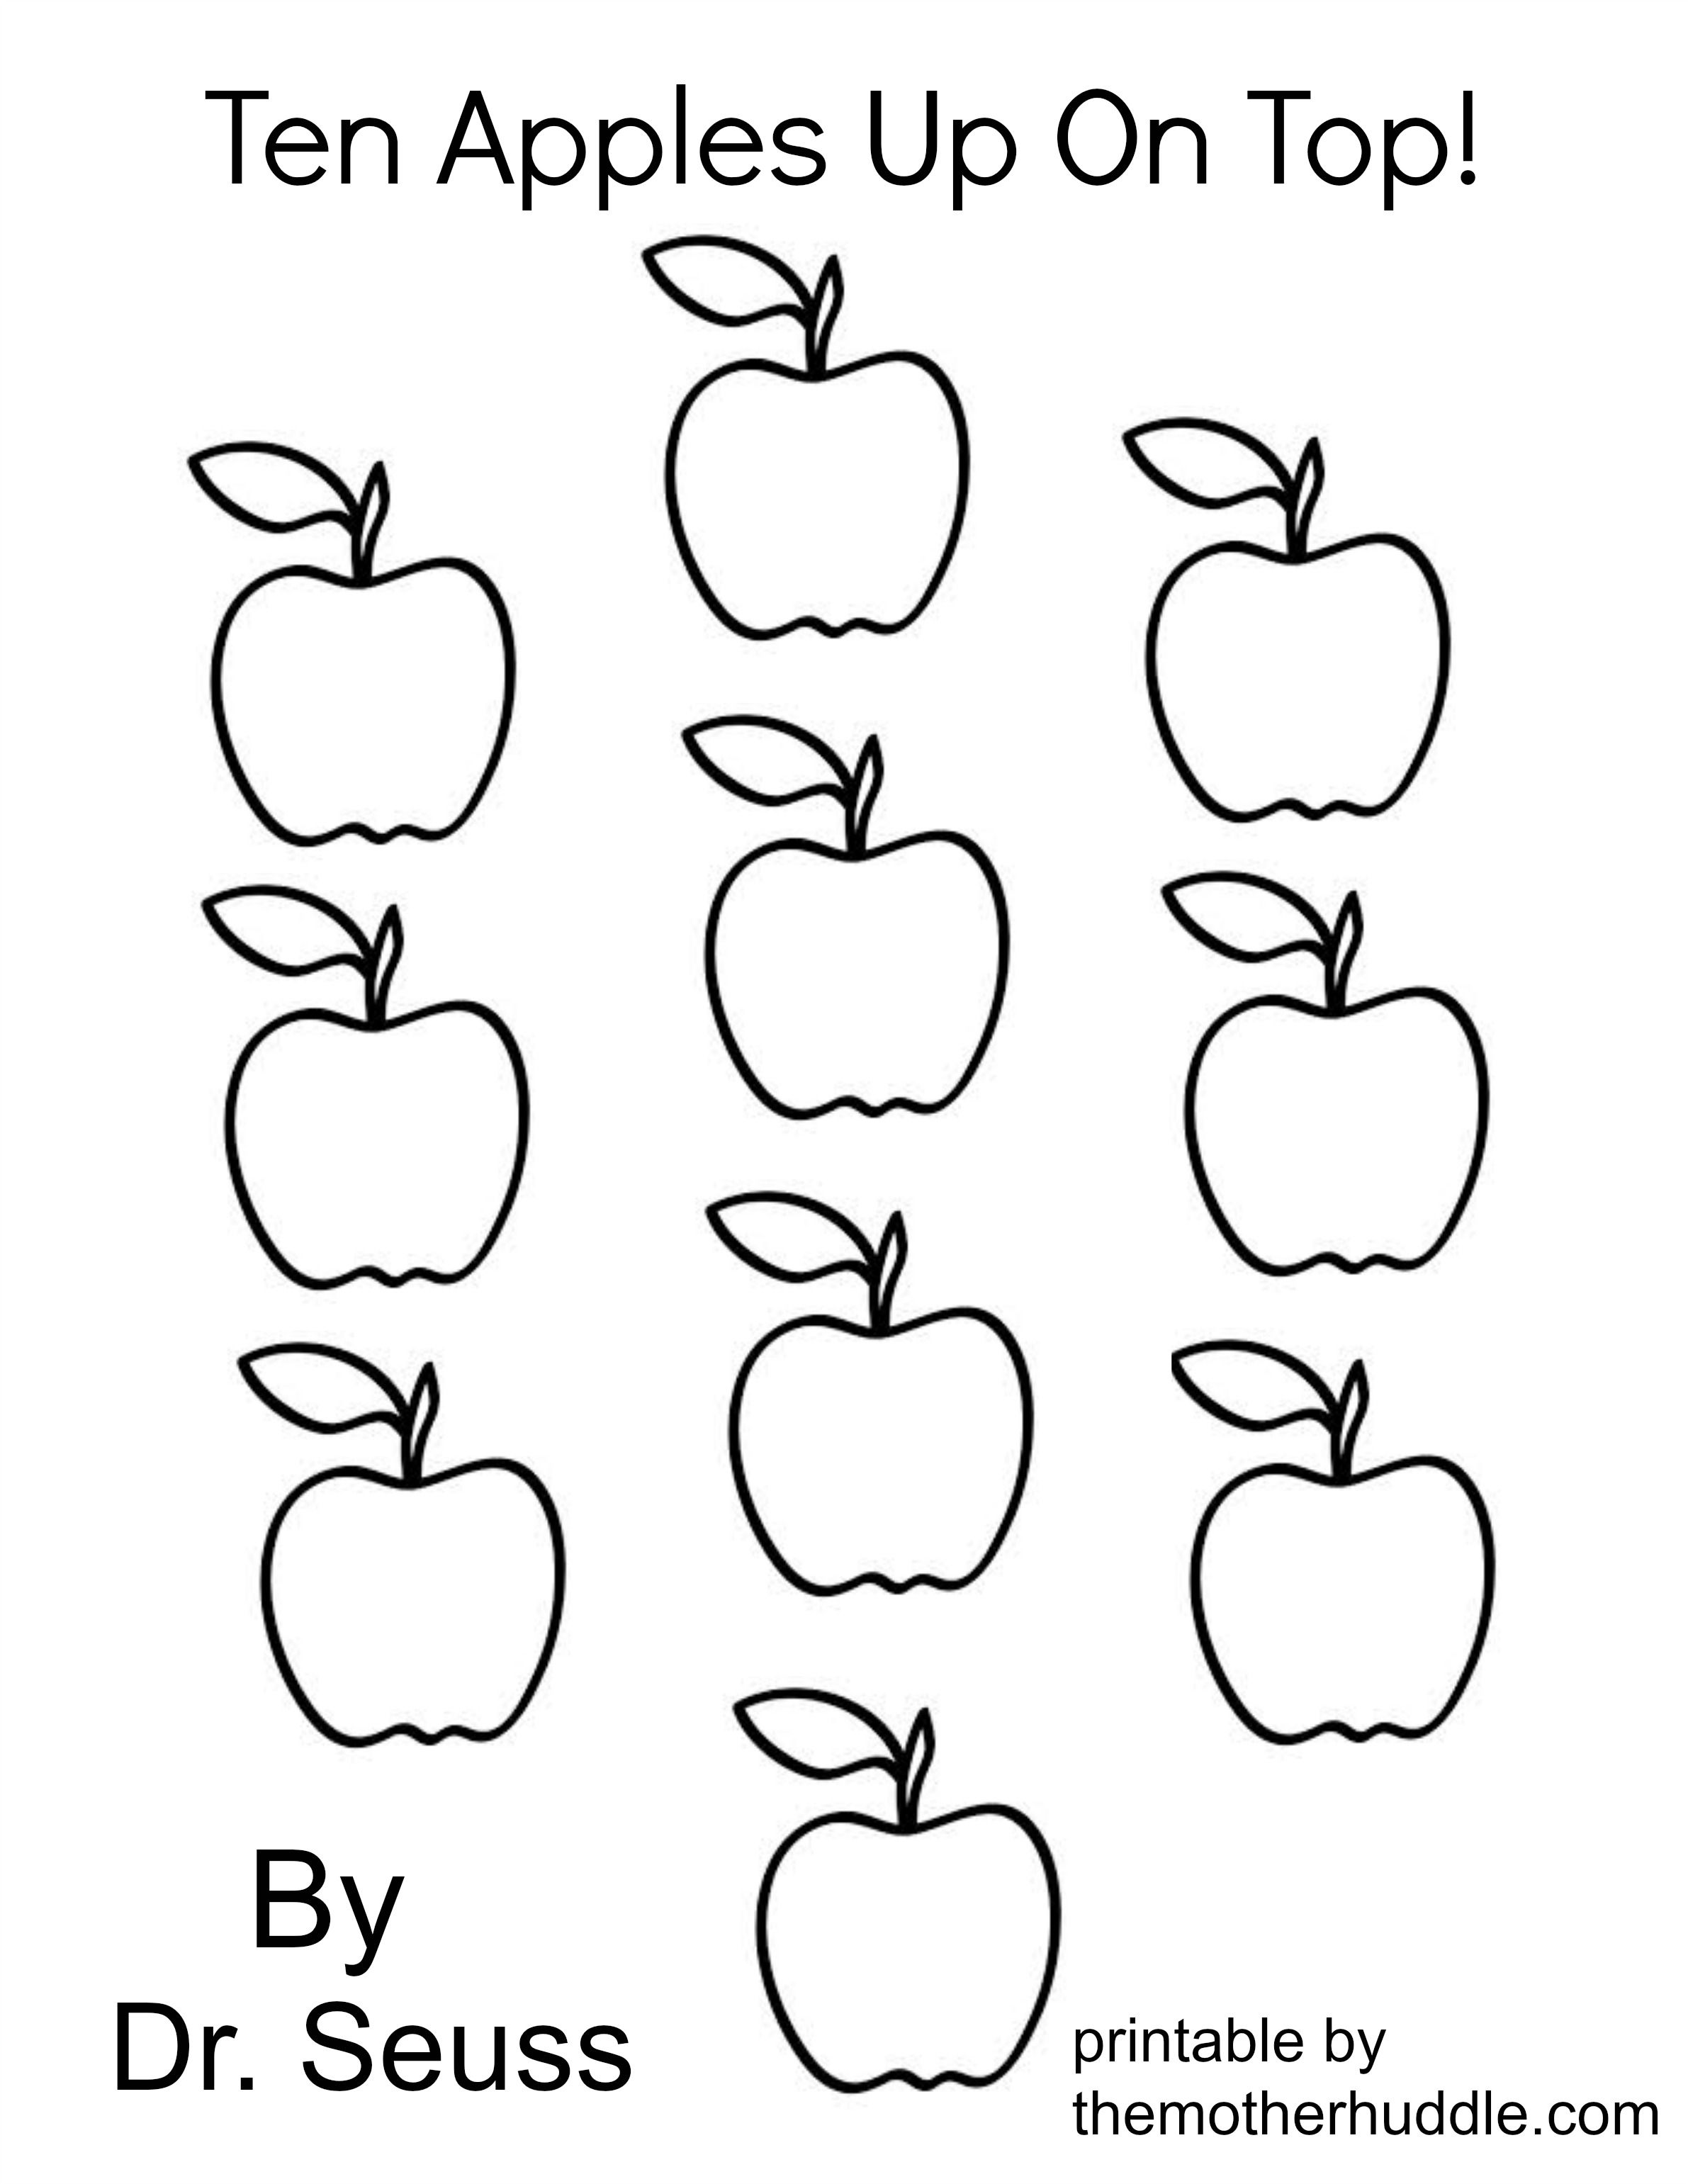 Ten Apples Up On Top Coloring Page.